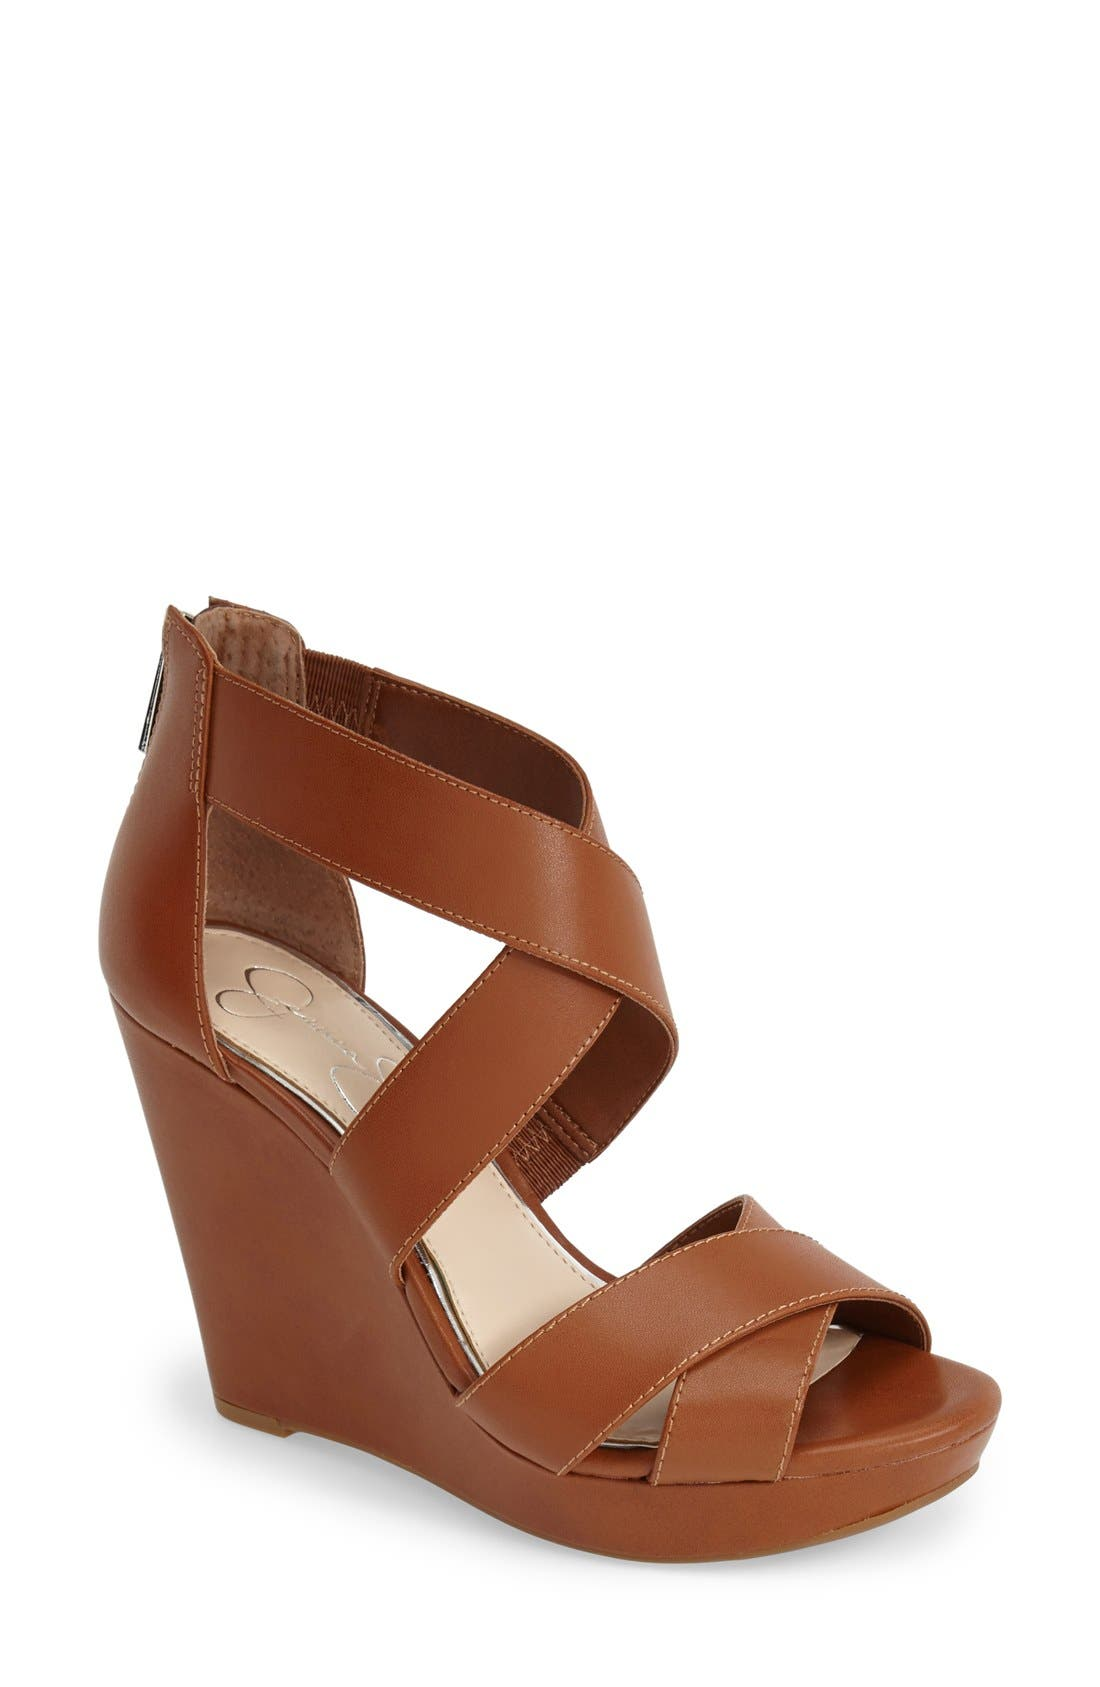 Alternate Image 1 Selected - Jessica Simpson 'Jadyn' Strappy Wedge Sandal (Women)